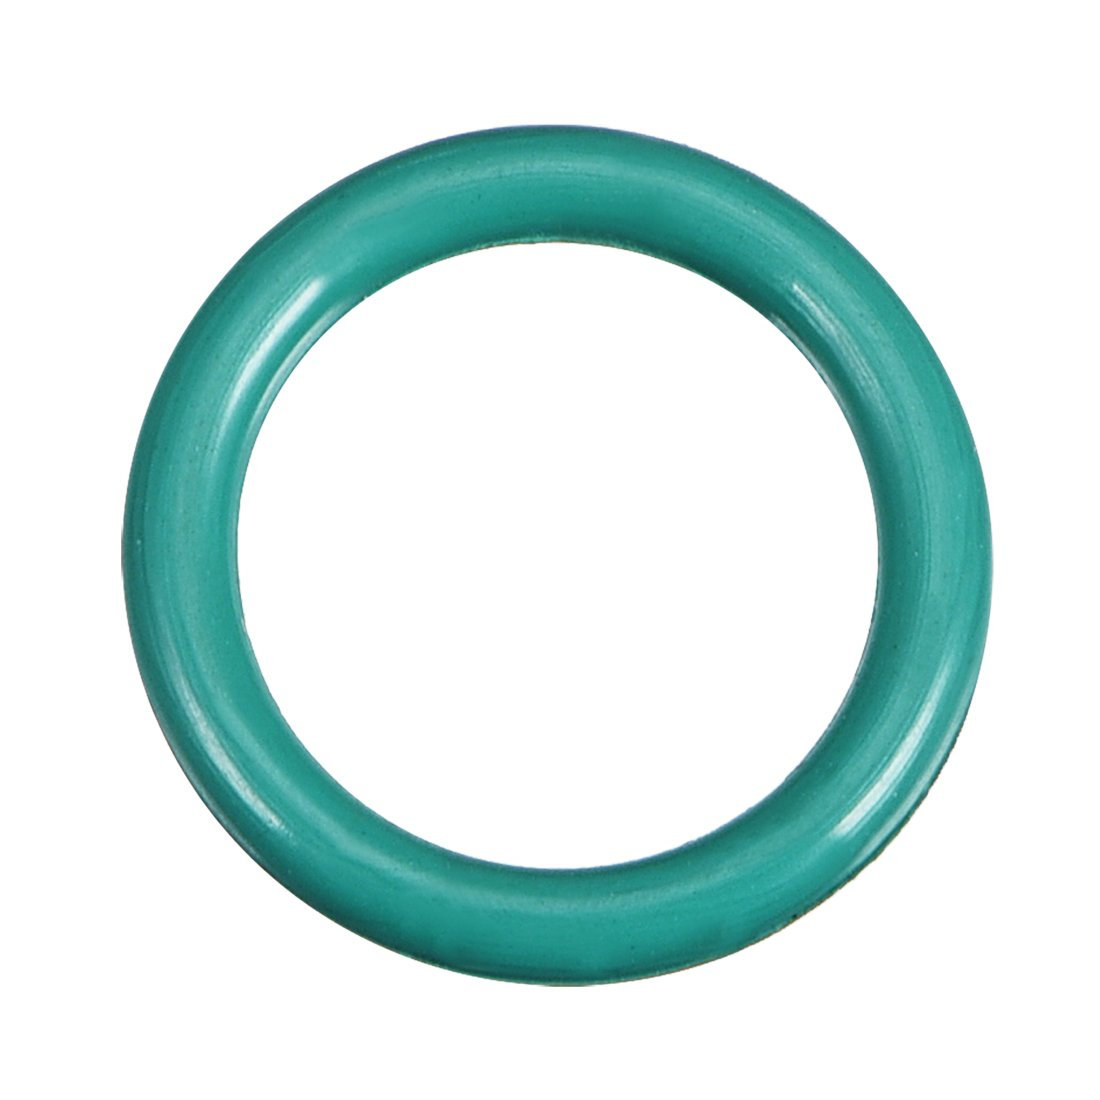 uxcell O-Rings Fluorine Rubber, 12mm Inner Diameter, 16mm OD, 2mm Width, Round Seal Gasket(Pack of 1)